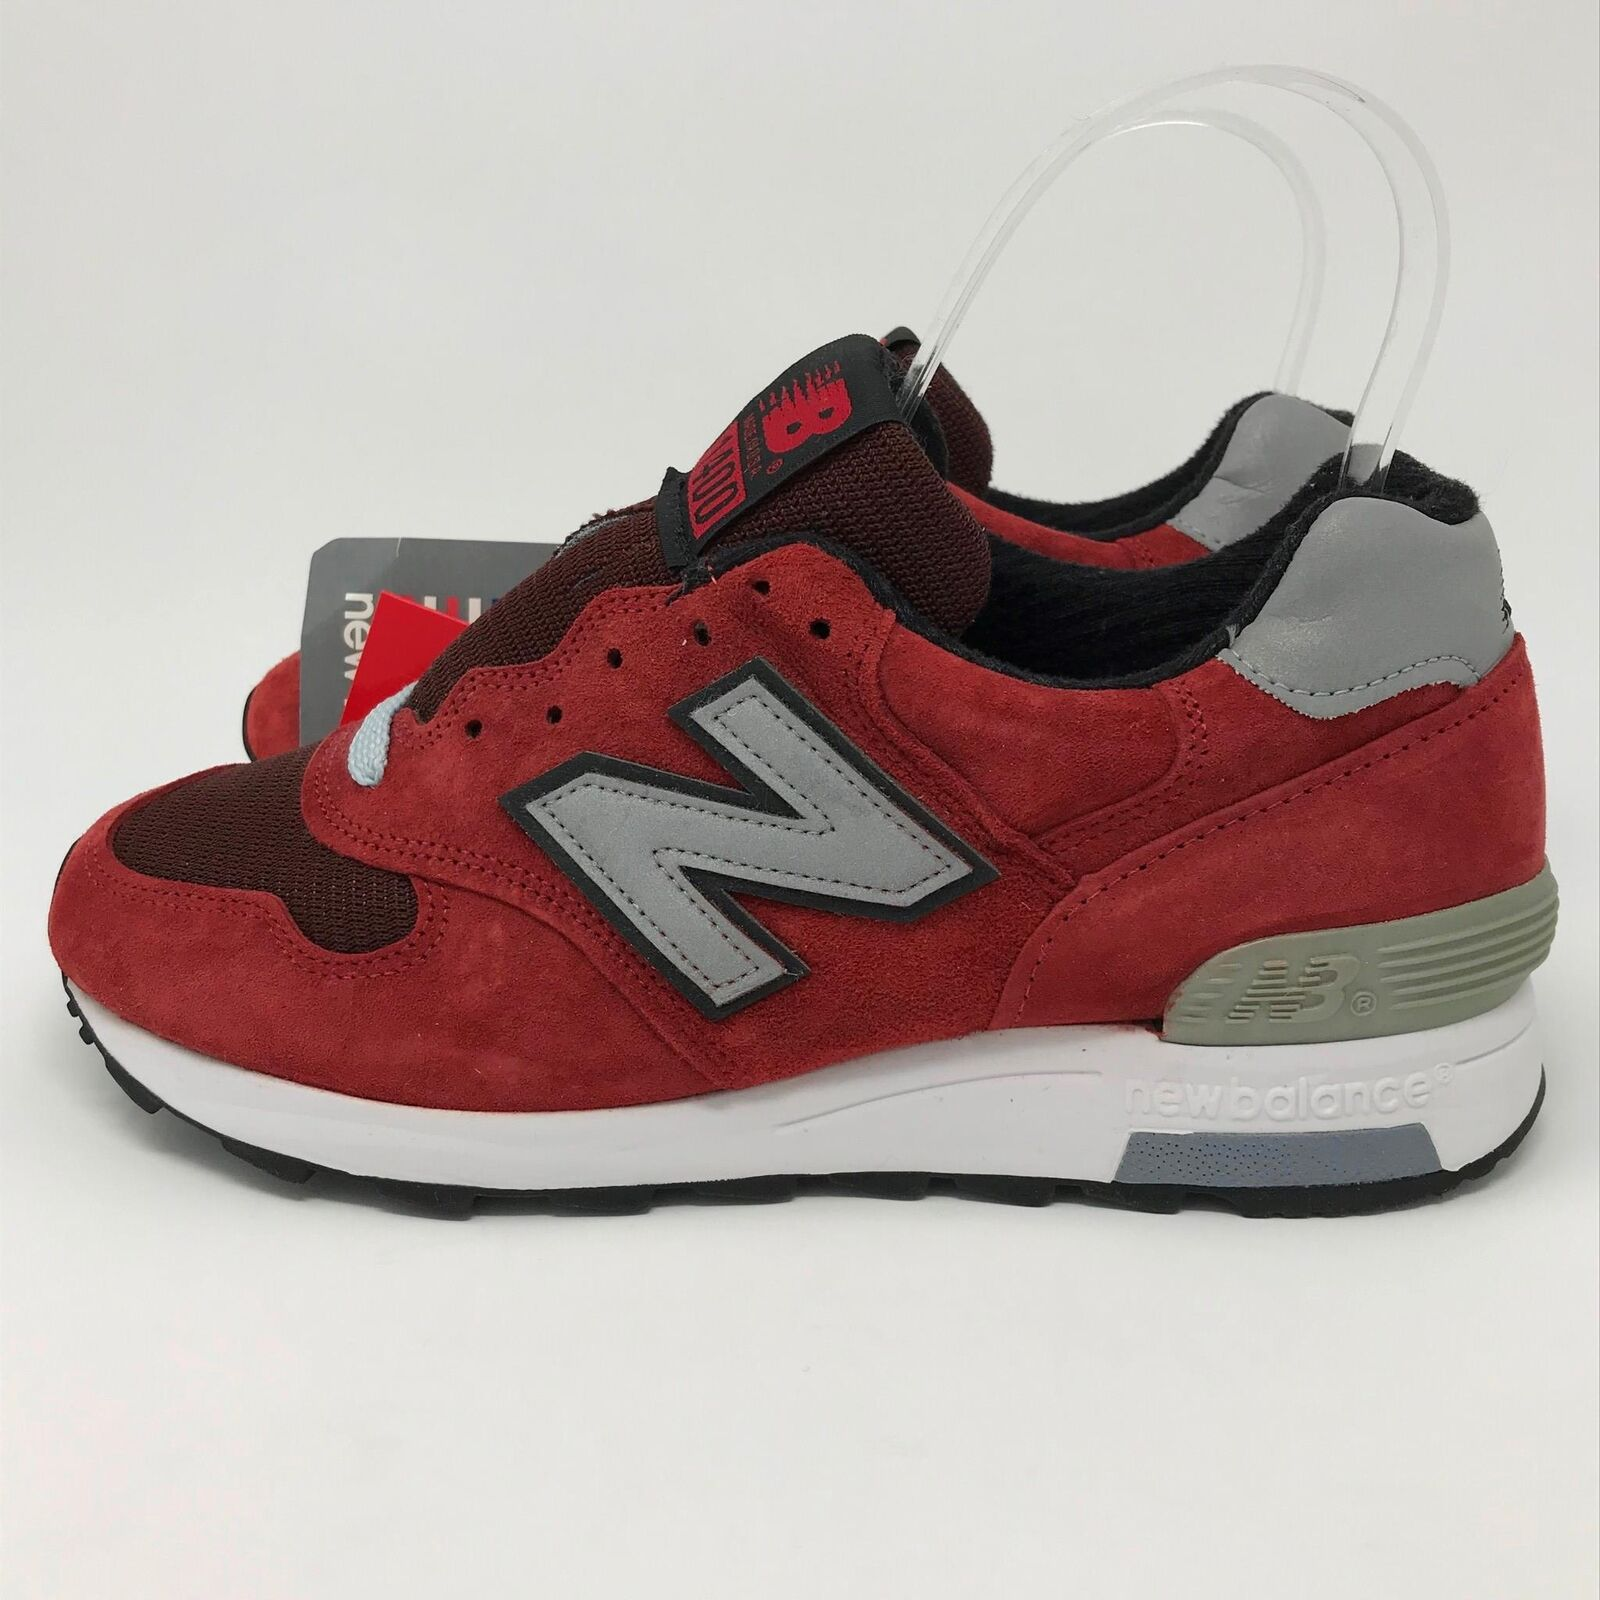 New Balance 1400 Red Suede & Mesh Men's Sneakers Size: 6  [M1400CT]